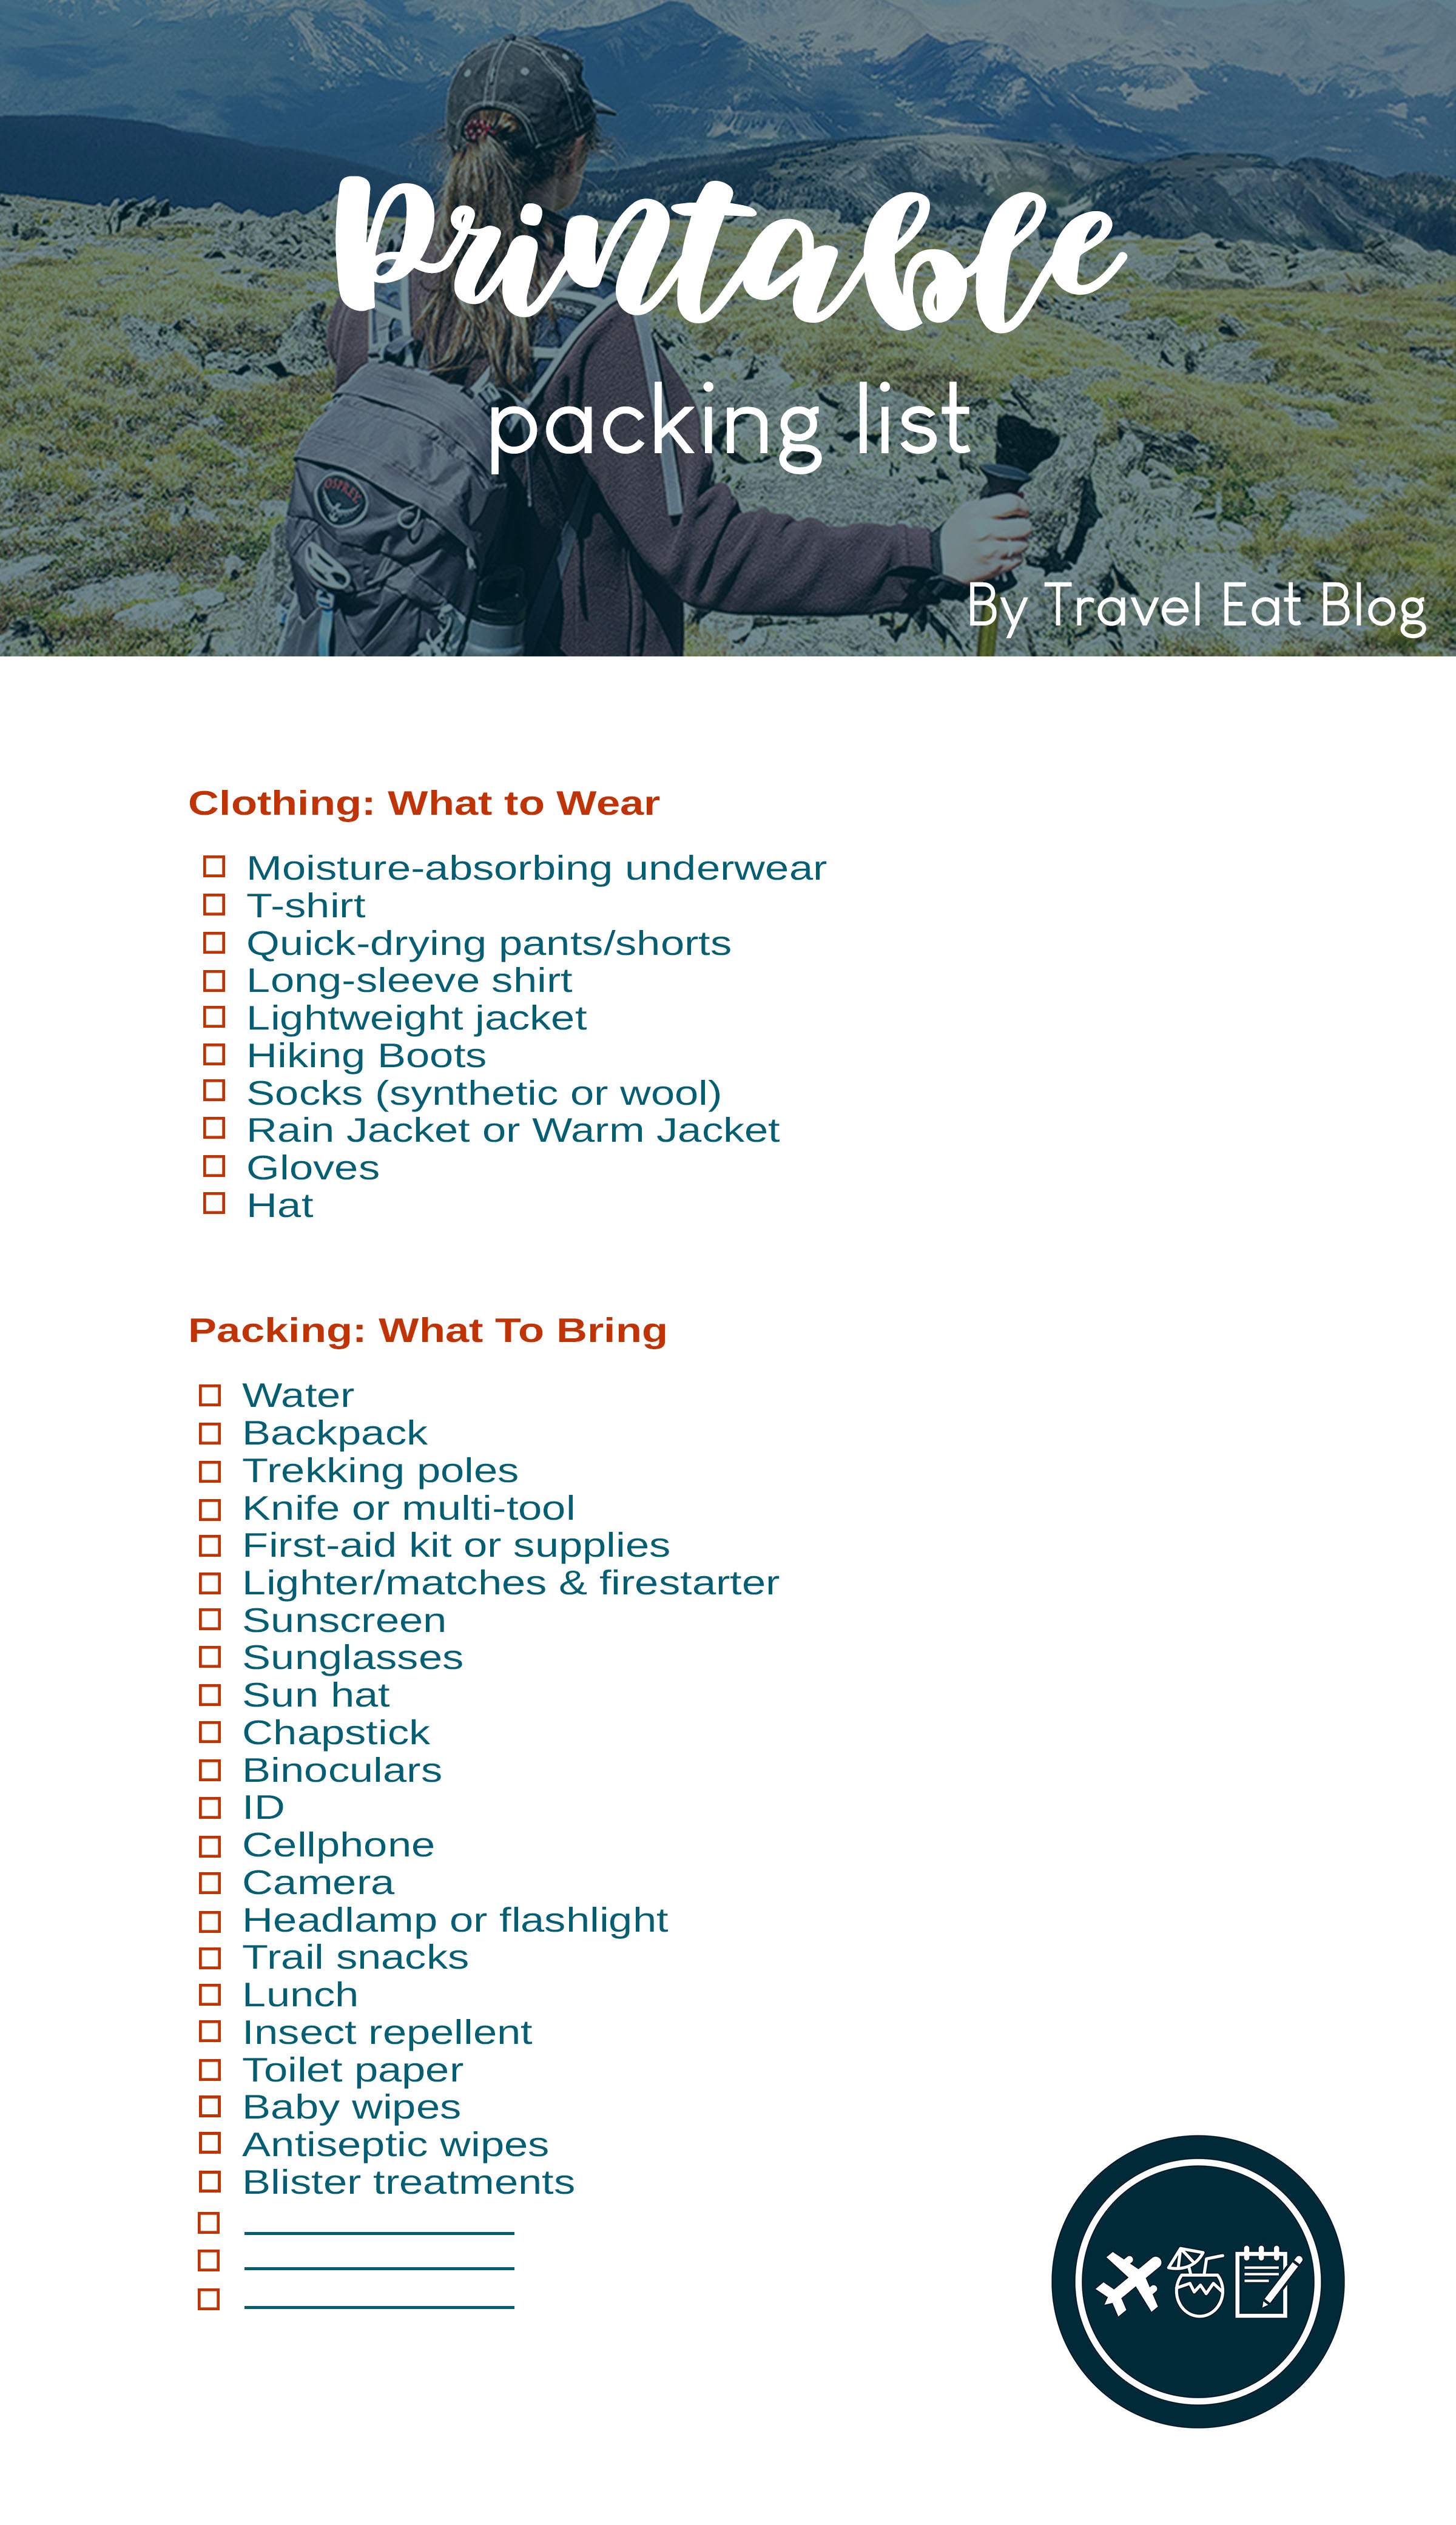 Day Hike Packing List Printable Pdf And Checklist Travel